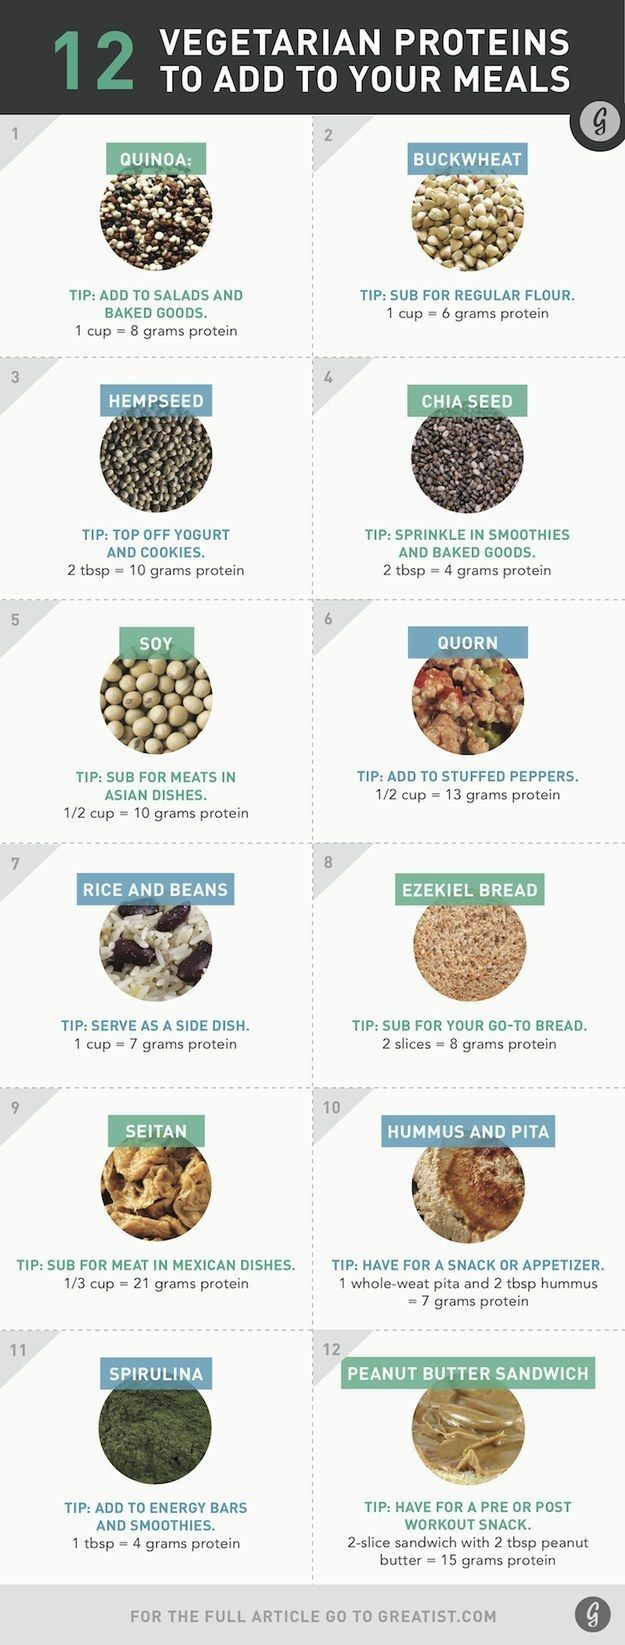 For vegetarians who want some more protein. And for meat eaters who want to eat a little less meat, but still get their protein.